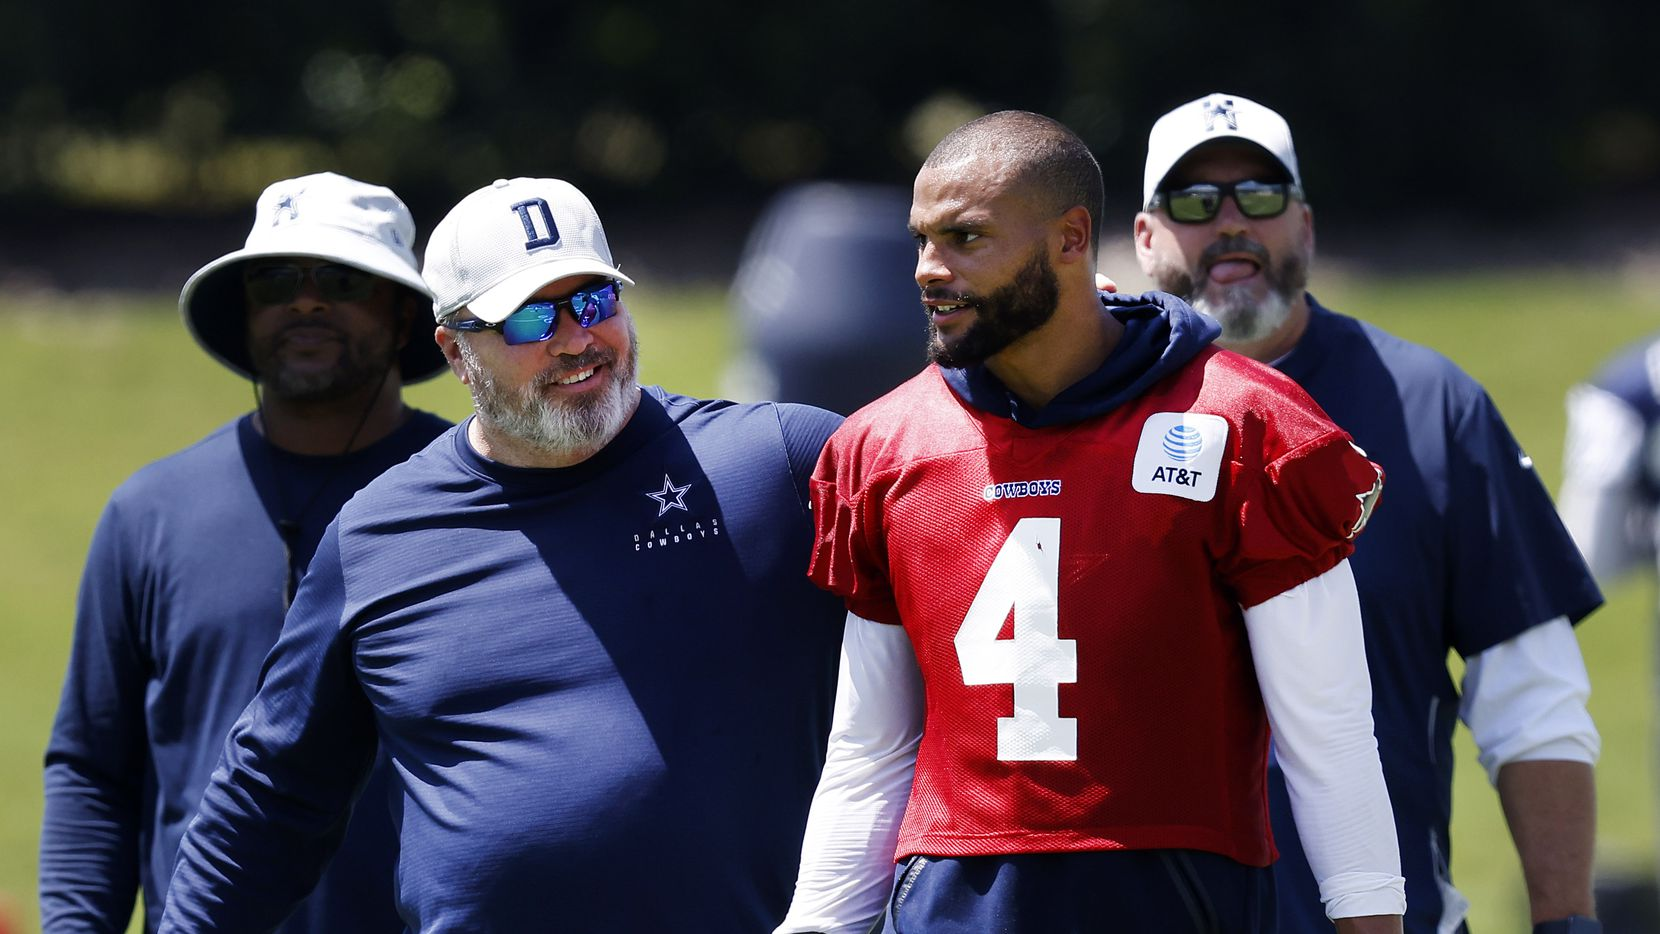 Dallas Cowboys head coach Mike McCarthy pats quarterback Dak Prescott (4) on the back following Training Camp practice at The Star in Frisco, Texas, Wednesday, August 25, 2021.